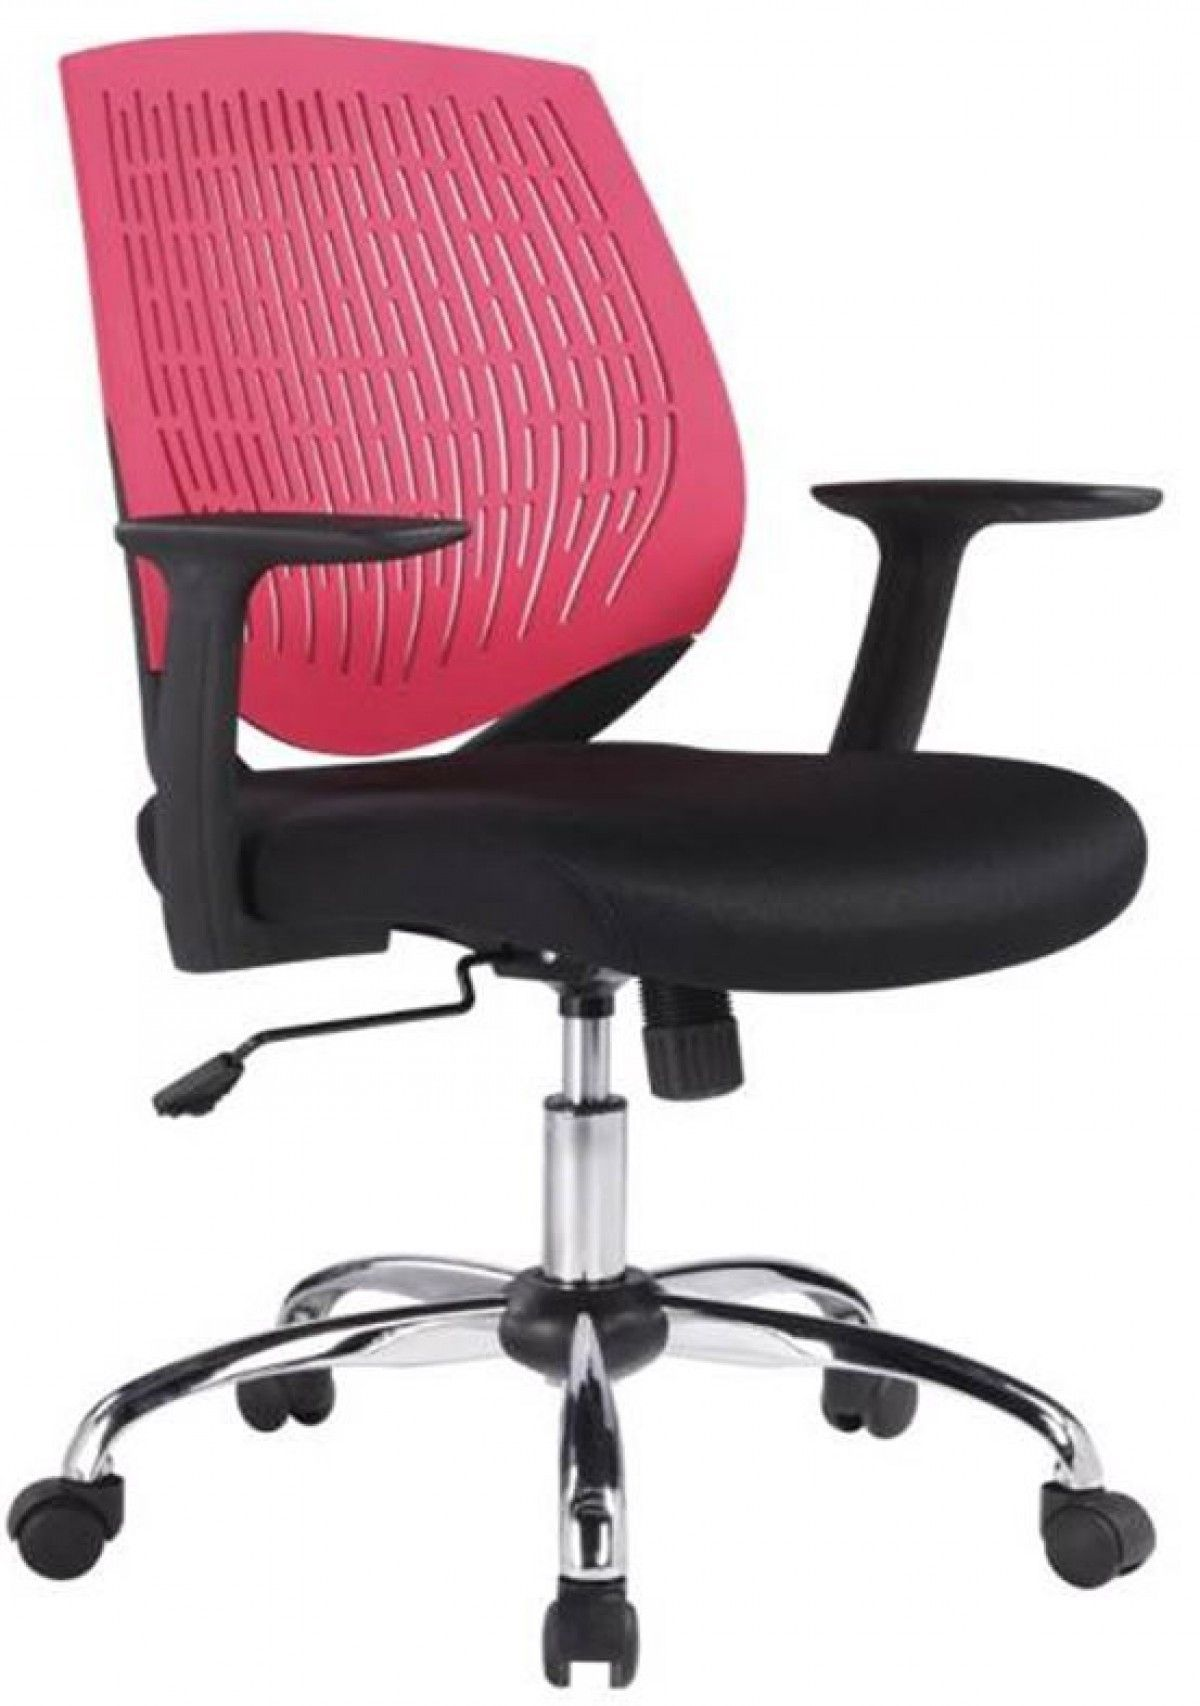 uk chair executive homcom pu gaming red leather aosom office